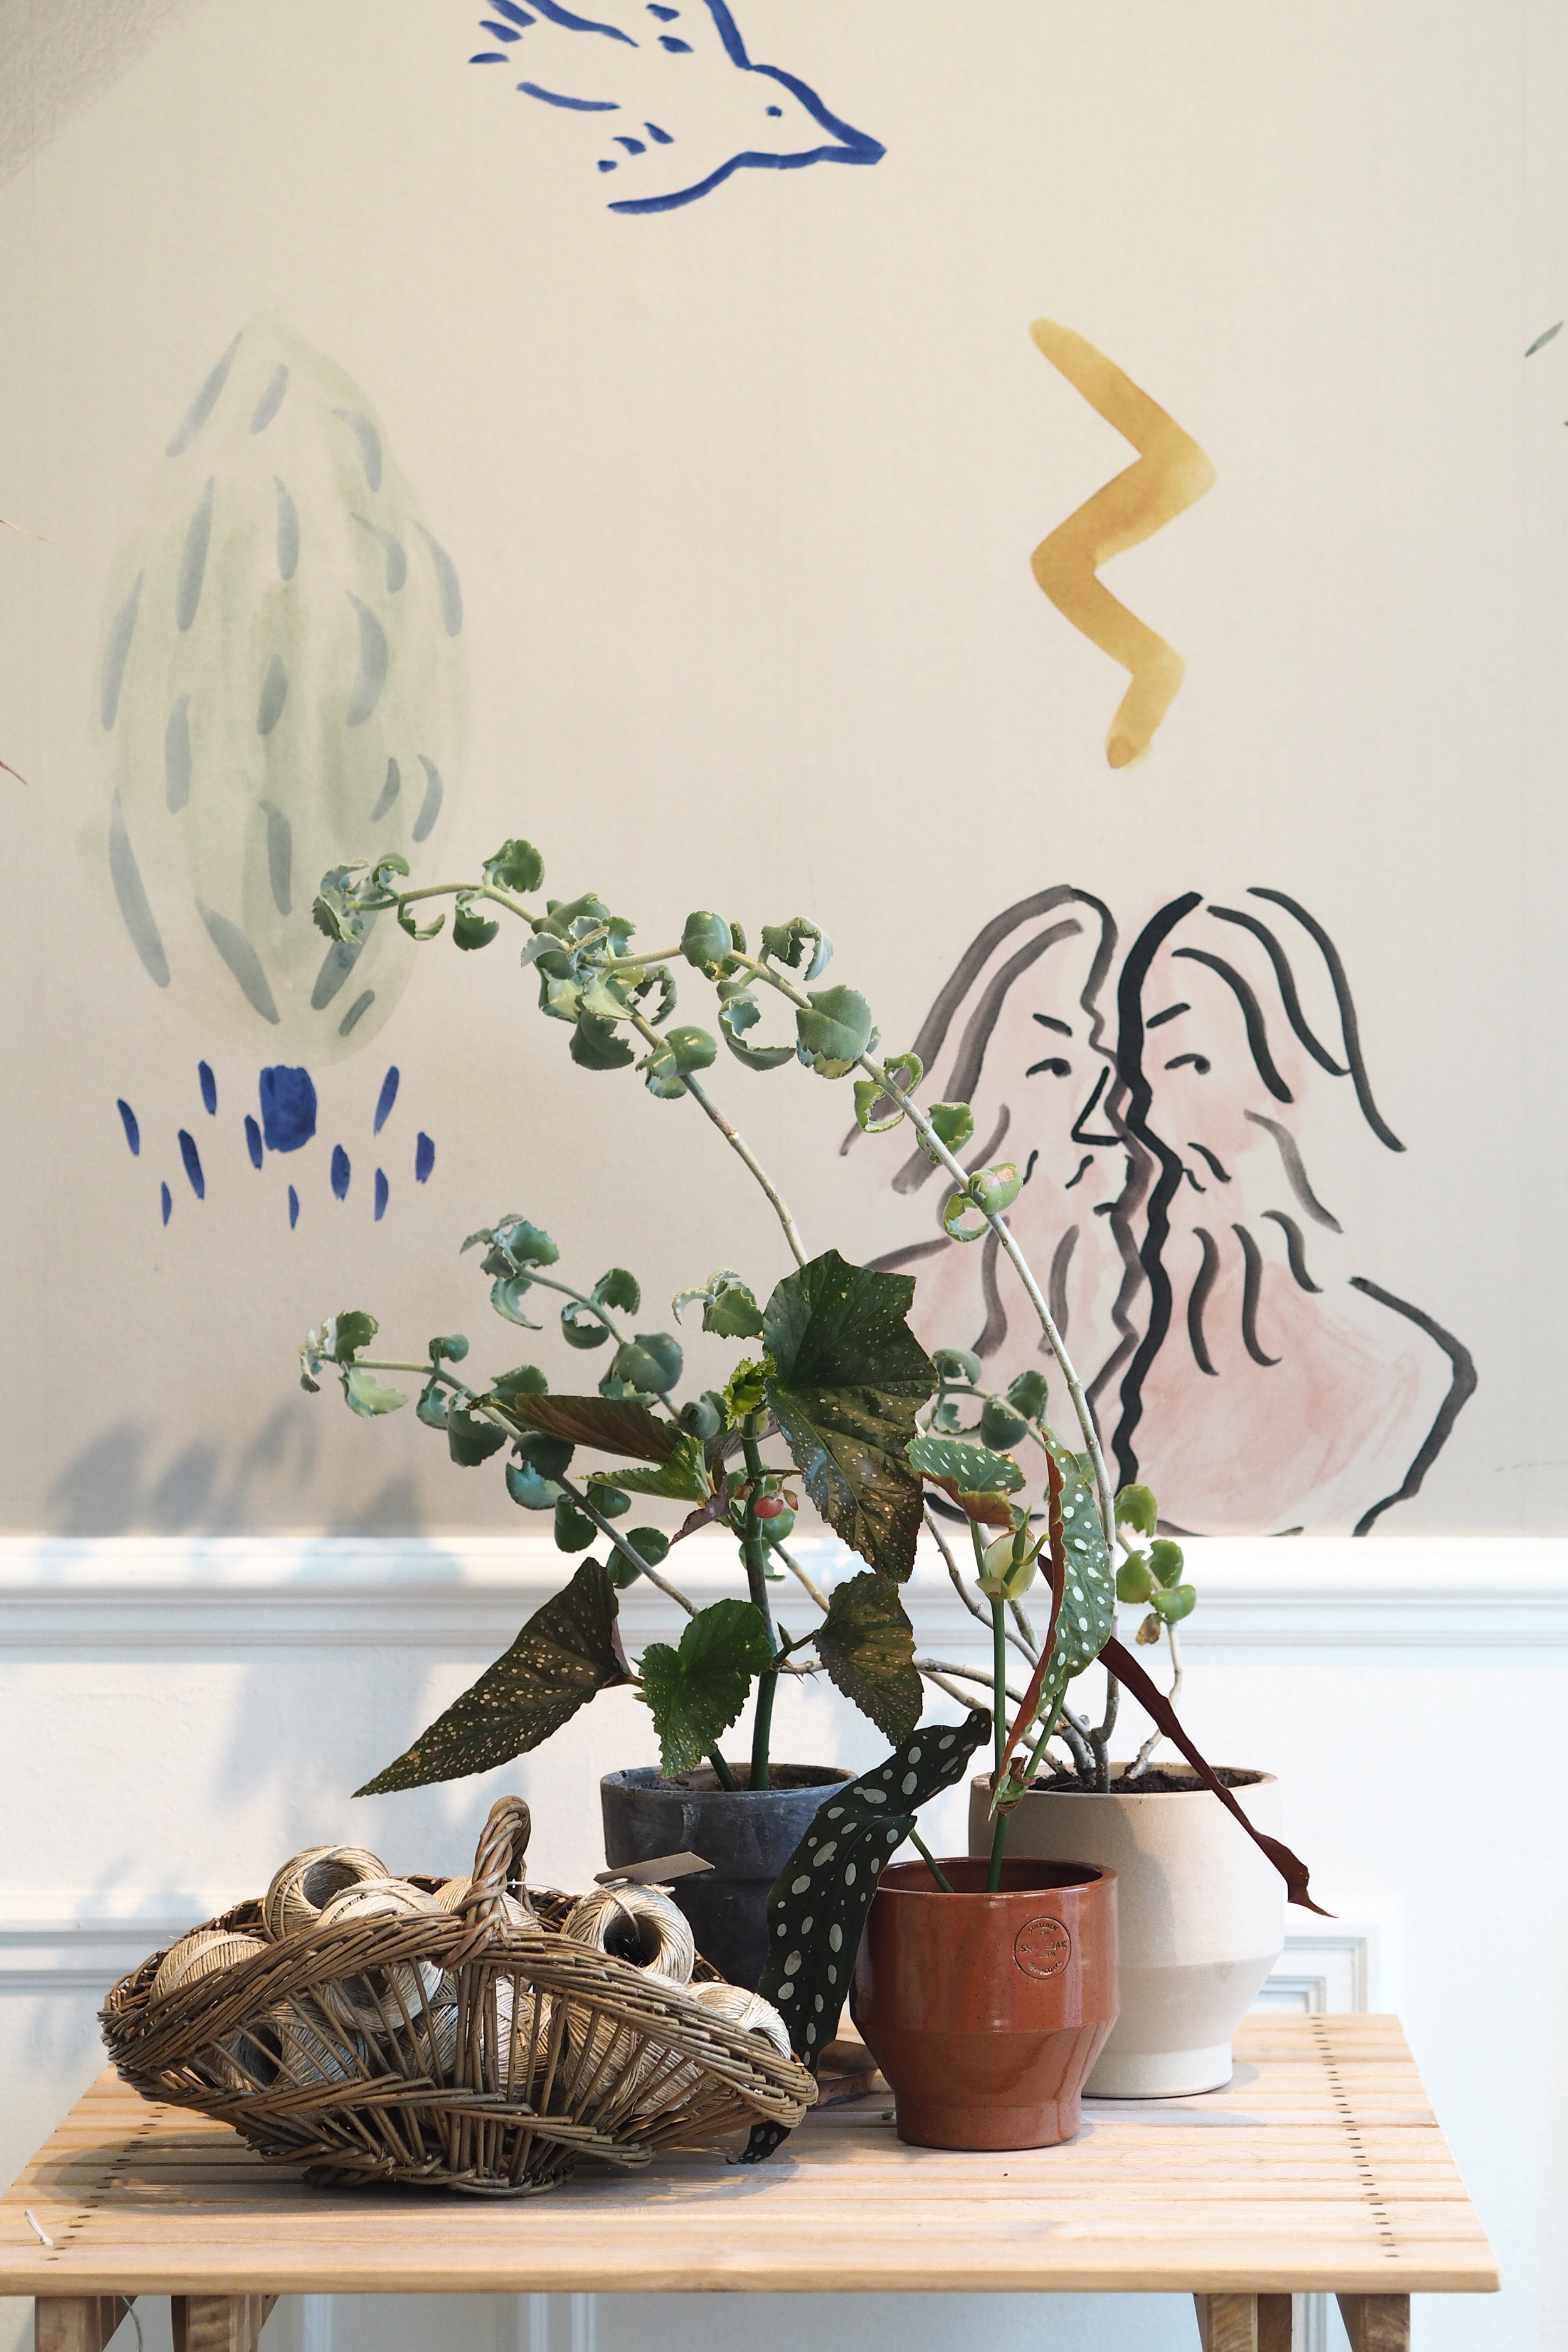 Garden inspiration at the Skagerak showroom in Copenhagen